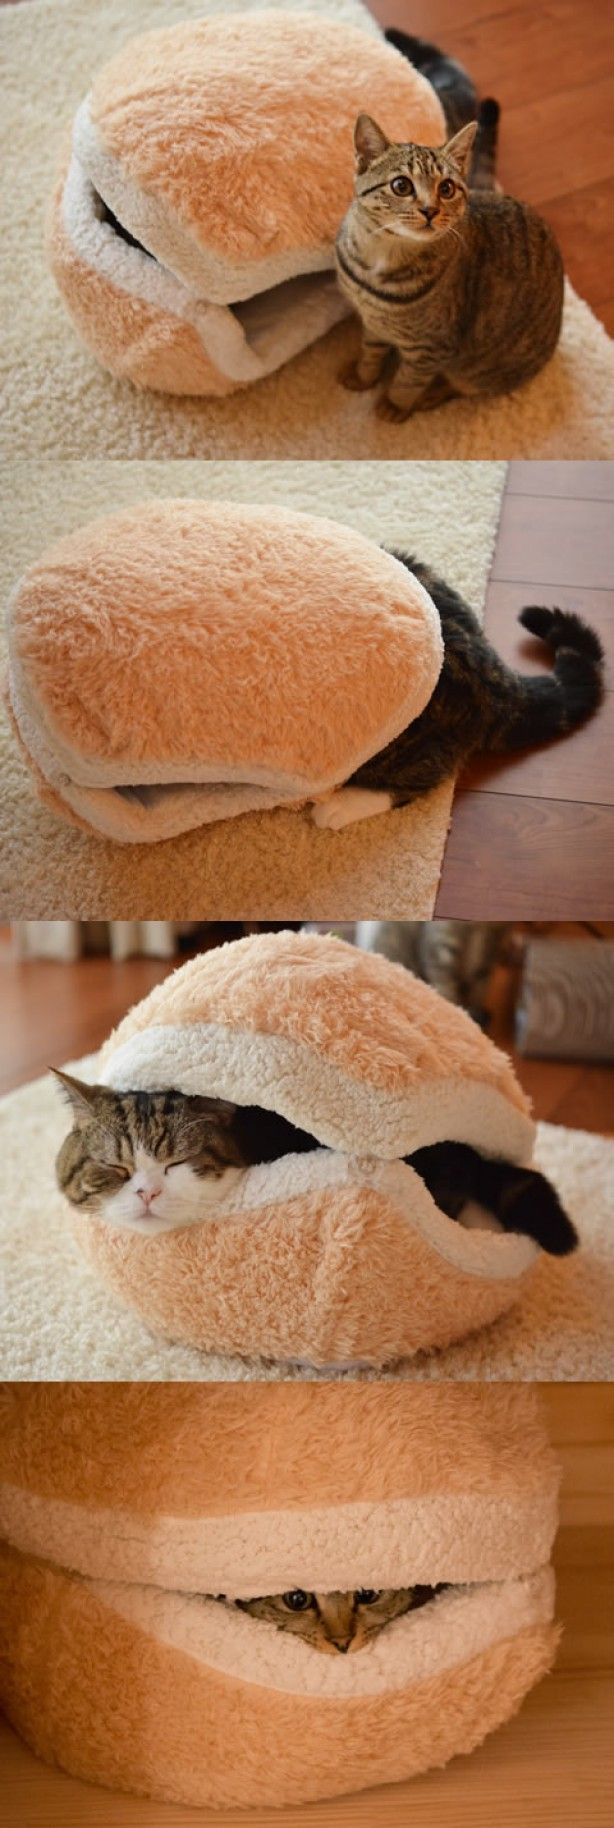 Cat burger bed! Just for you Lindsea!